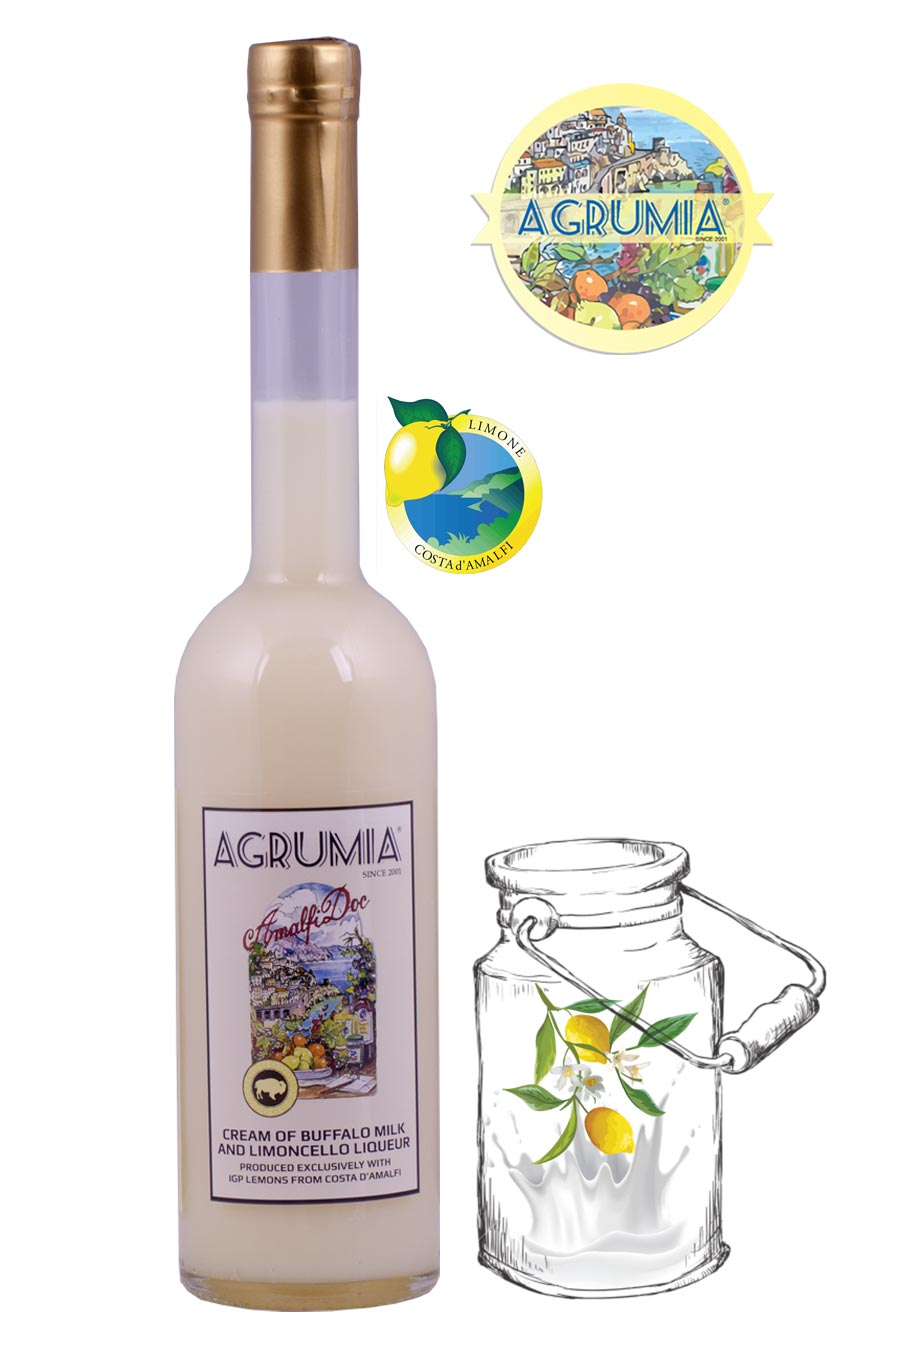 Agrumia Cream of Limoncello with Buffalo Milk 50cl